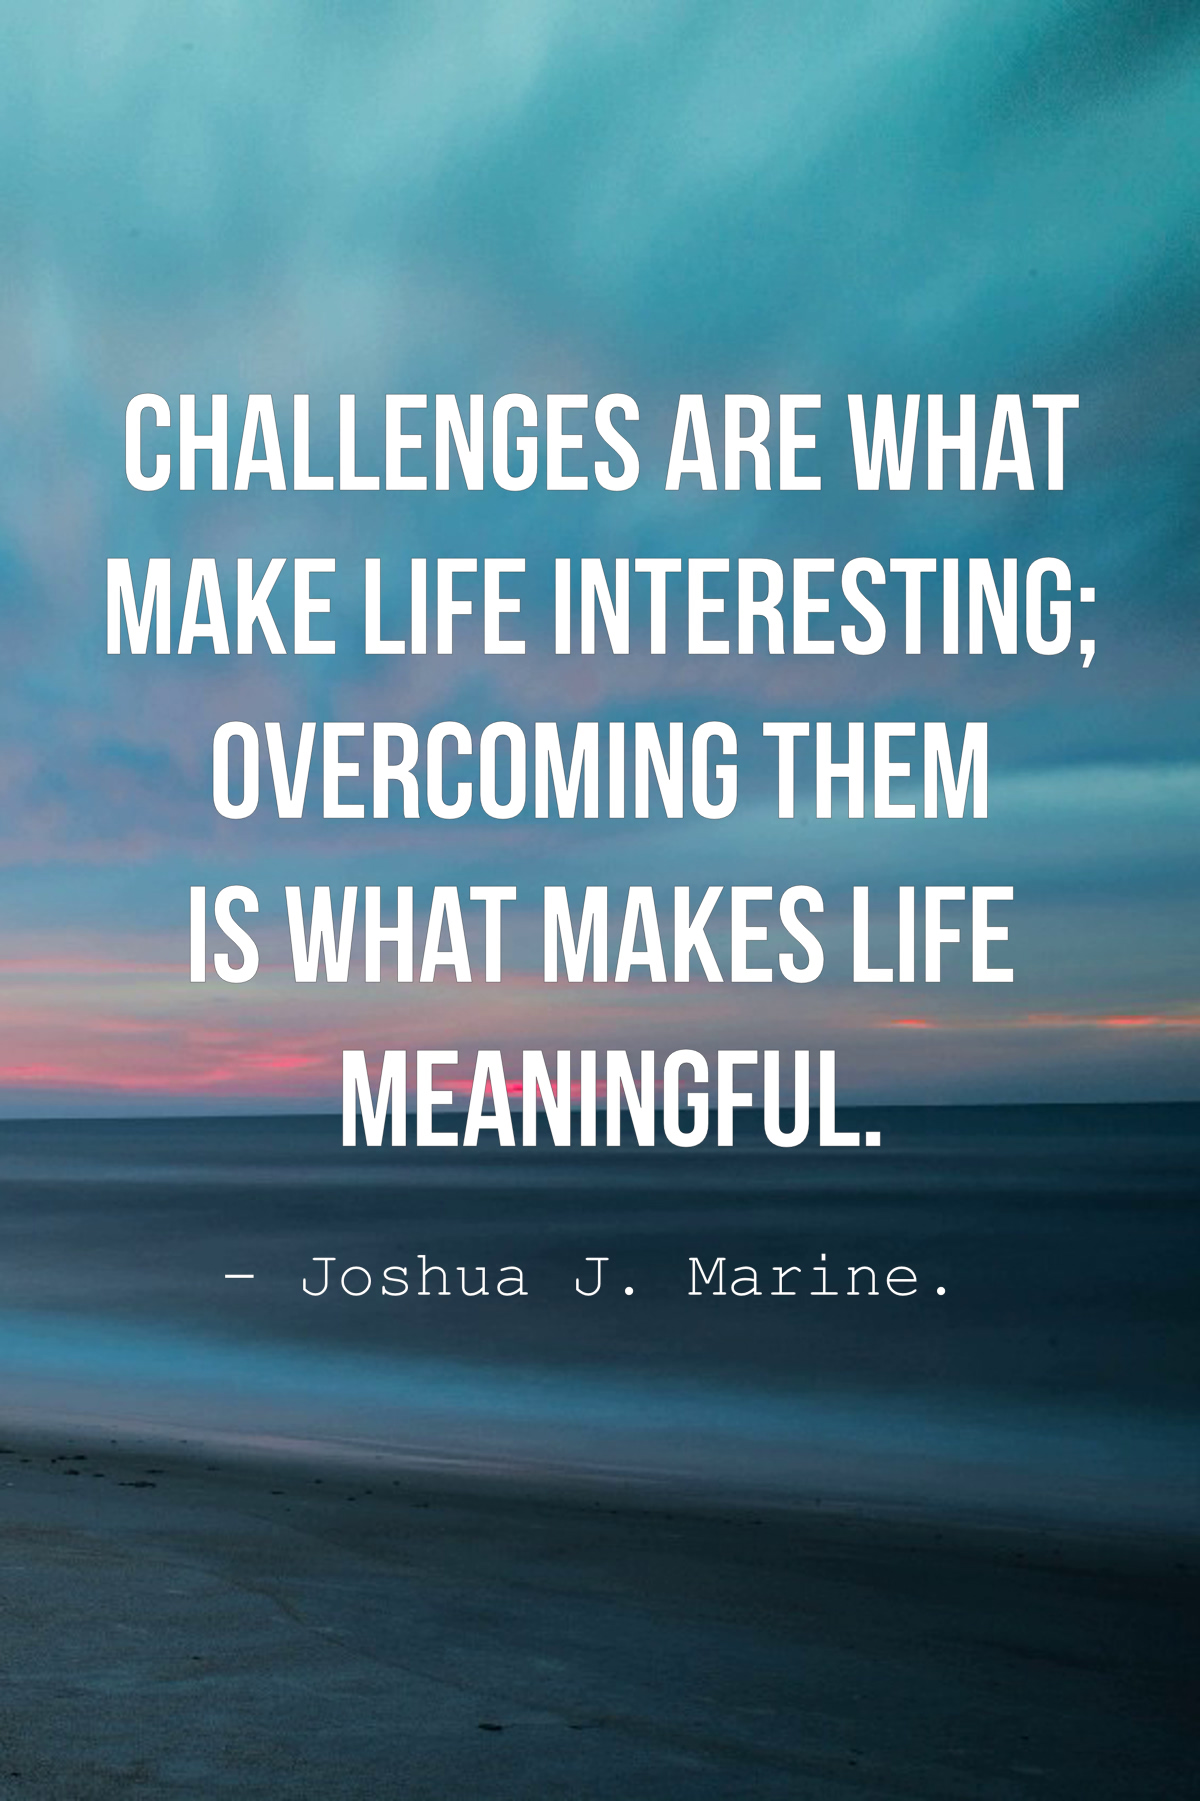 Life Obstacle Quotes : obstacle, quotes, Inspirational, Challenges, Quotes, Sayings